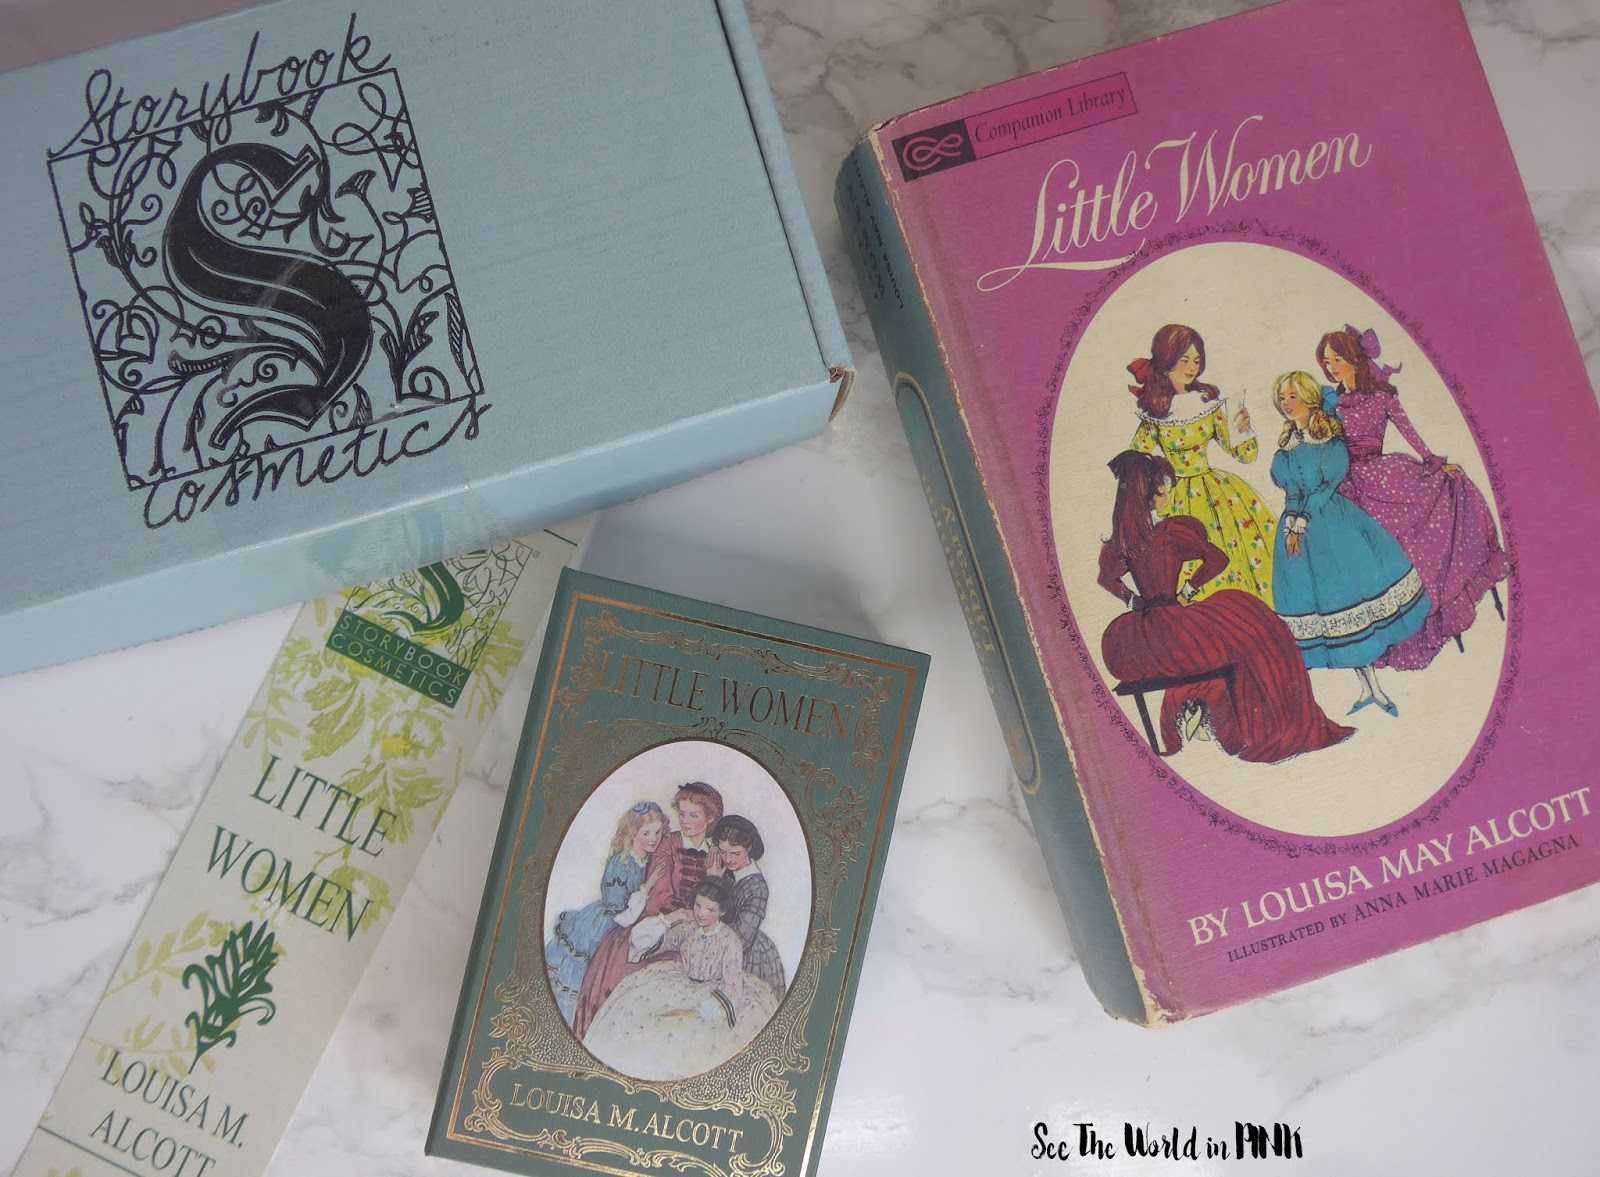 Storybook Cosmetics Book Club Subscription Box